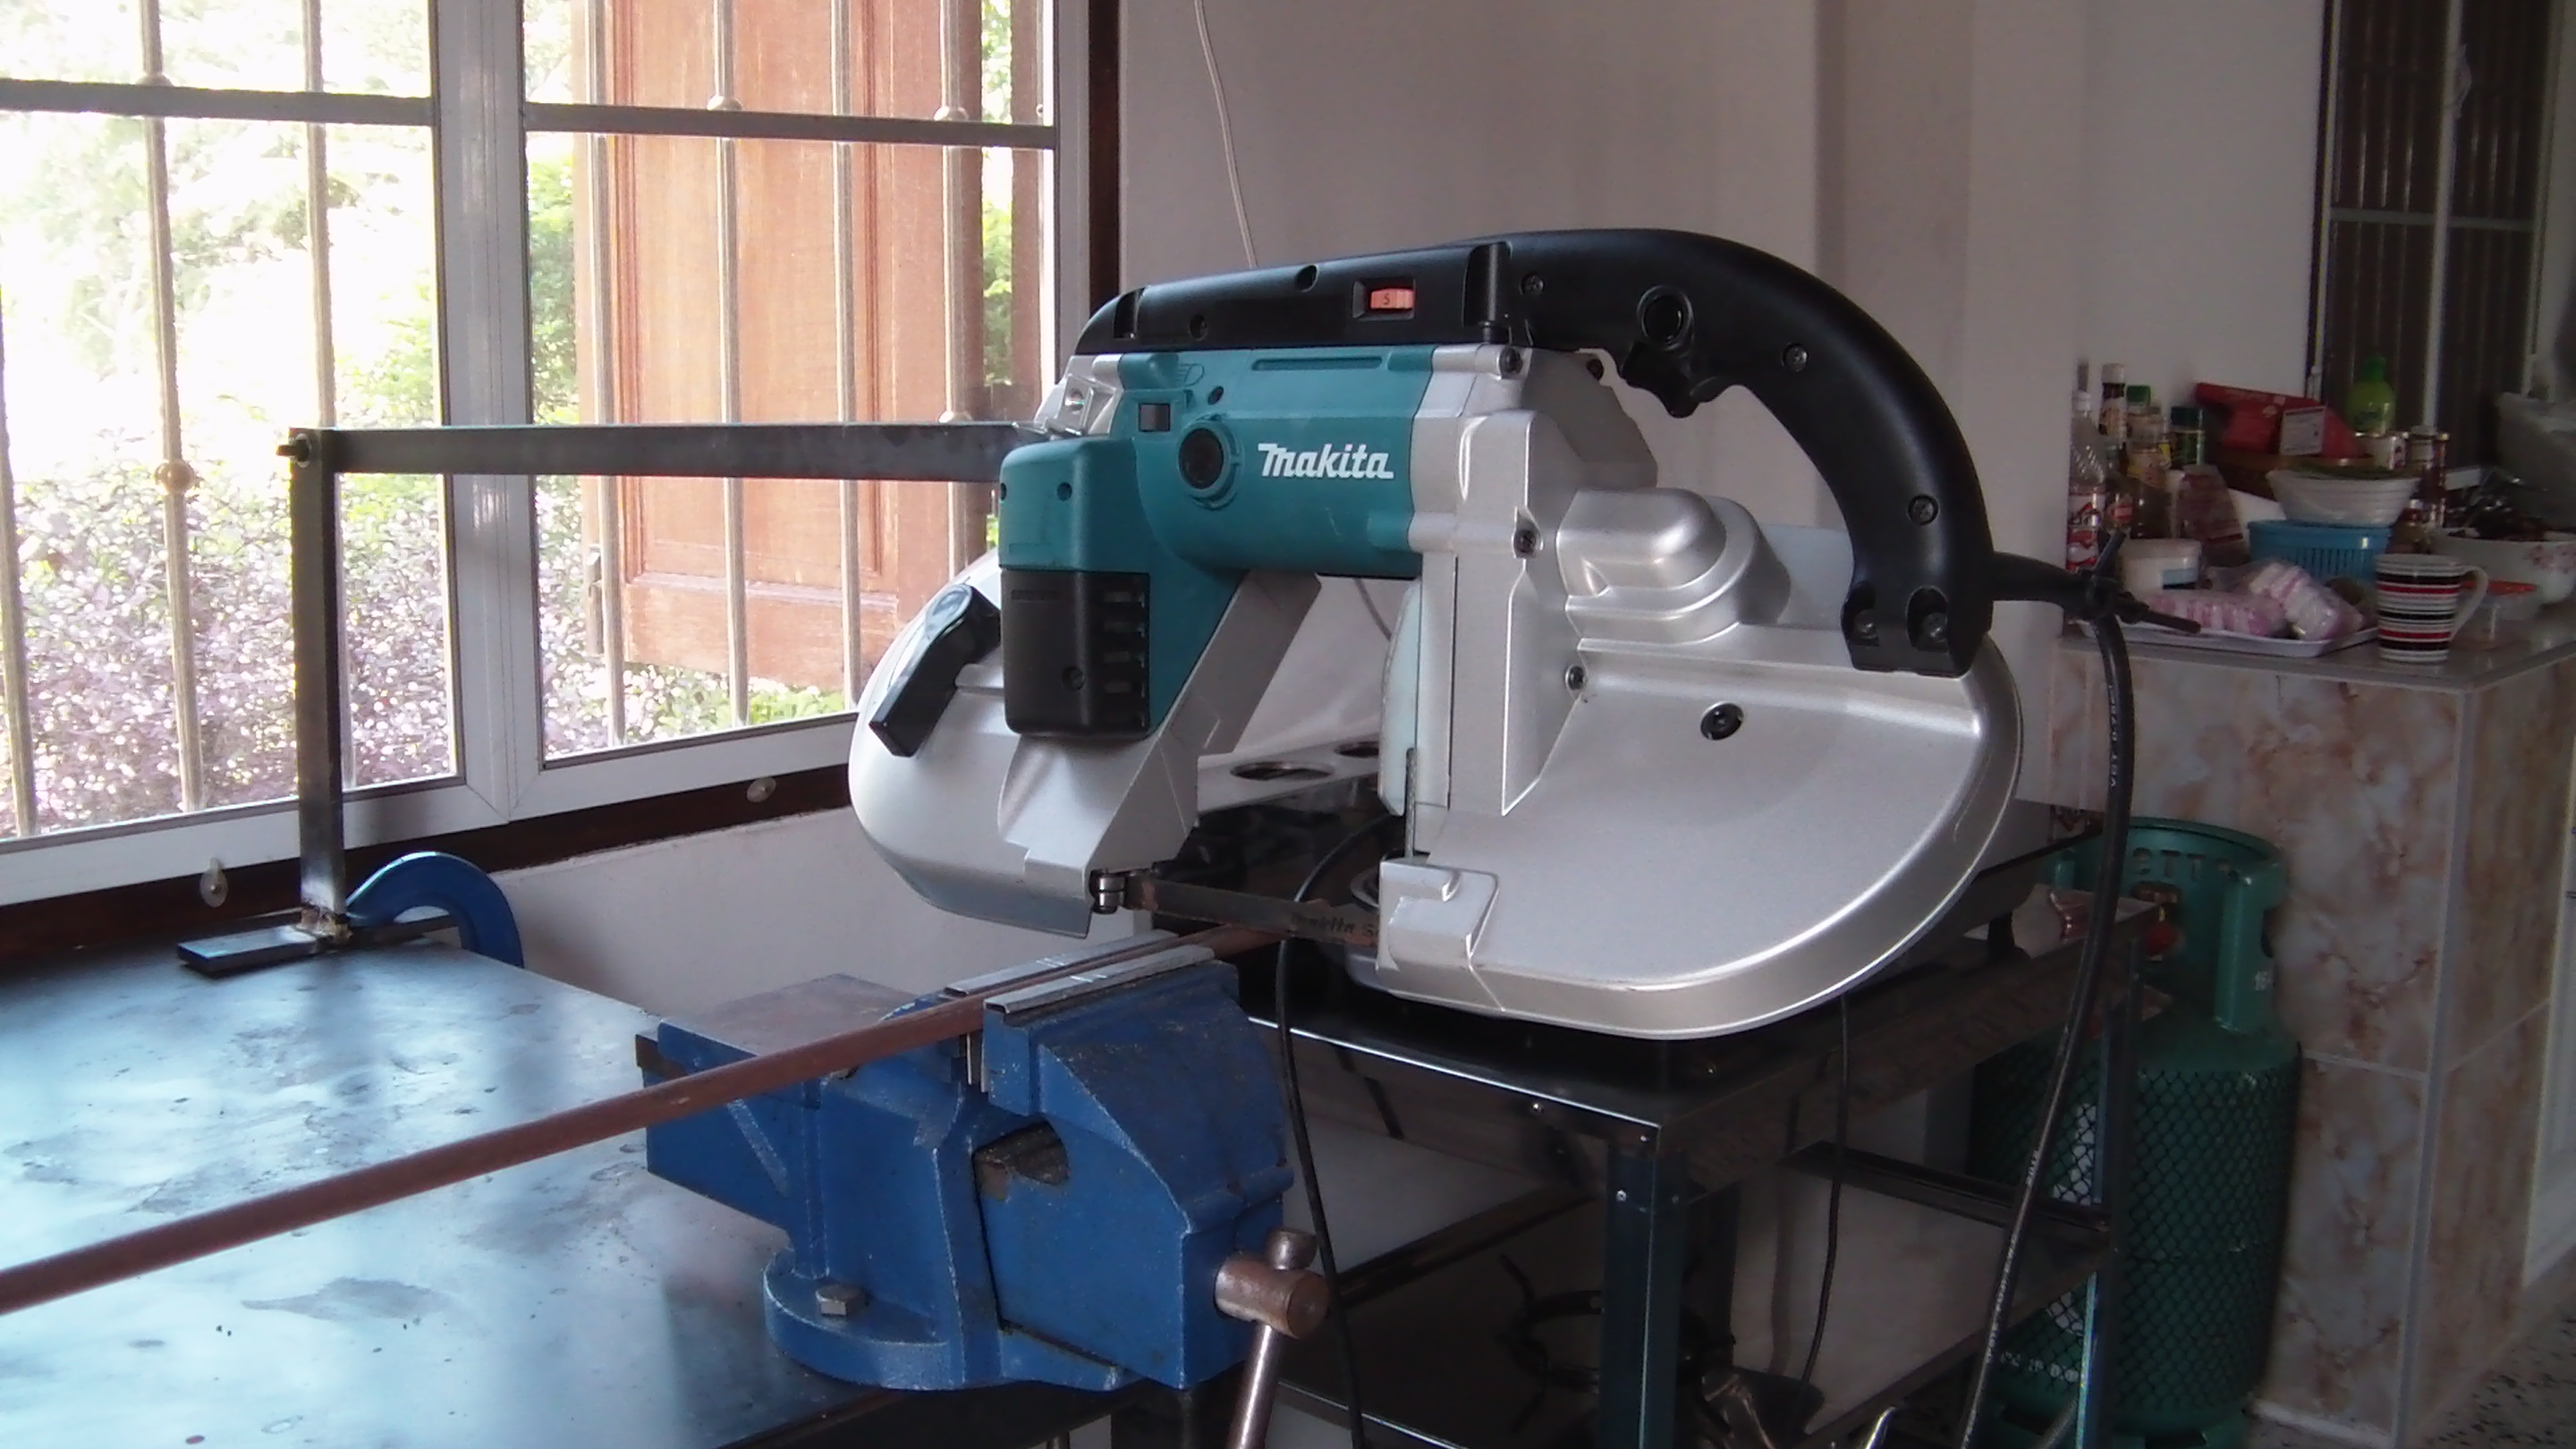 Making A Horizontal Cut Off Type Holder For The Makita 2107f Band Saw